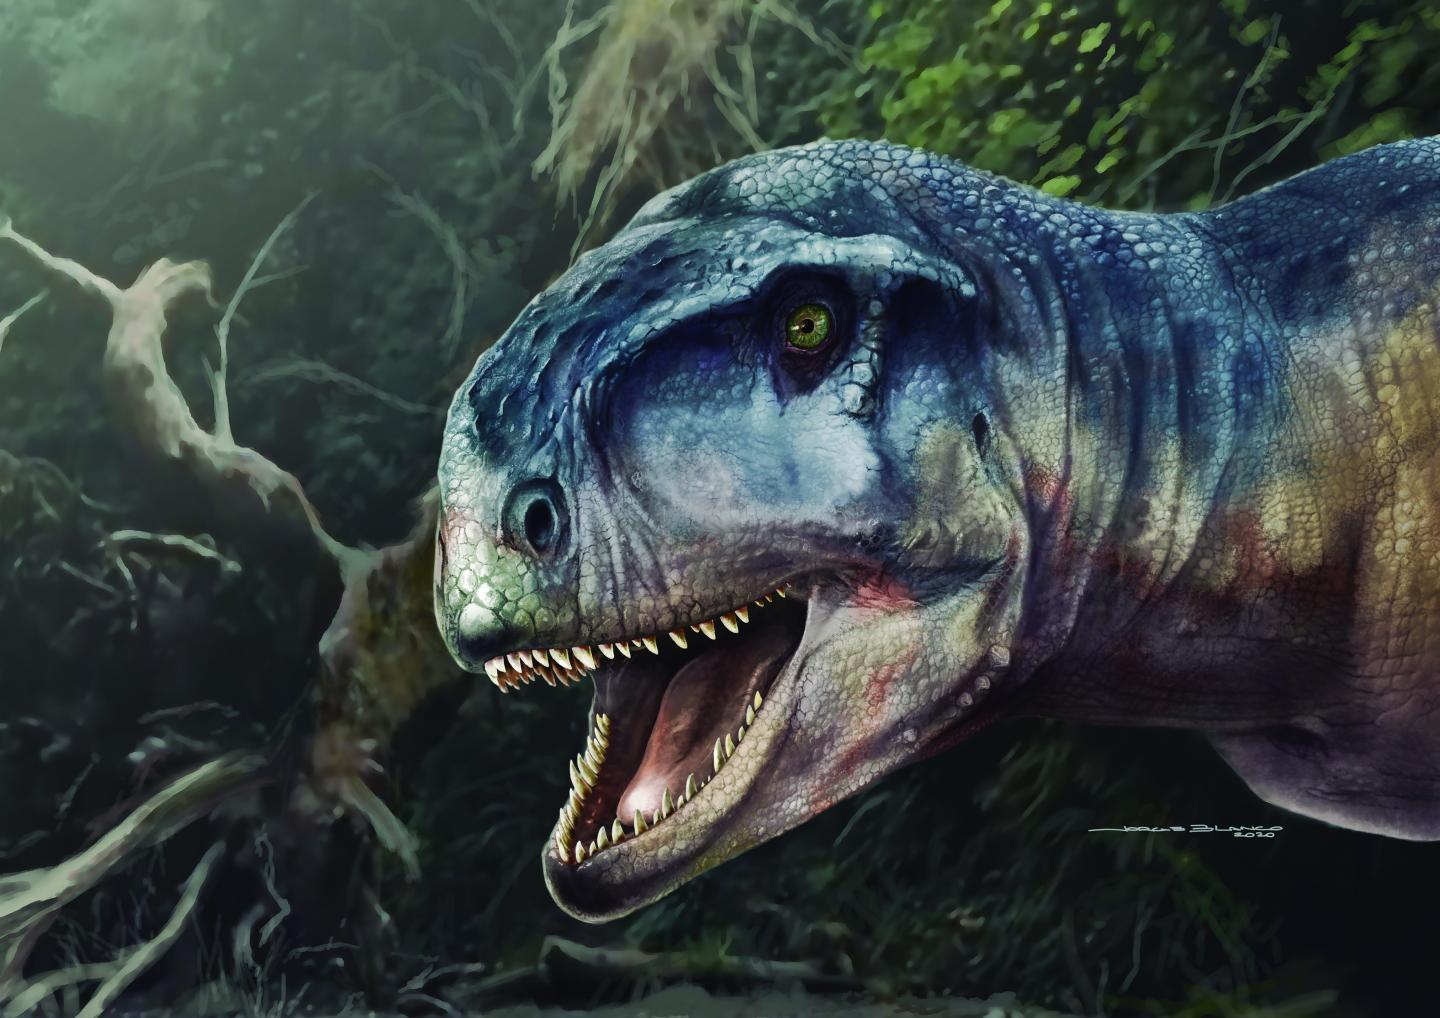 <p>Llukalkan aliocranianus was a large meat-eating dinosaur that would have been at the top of the food chain.</p>